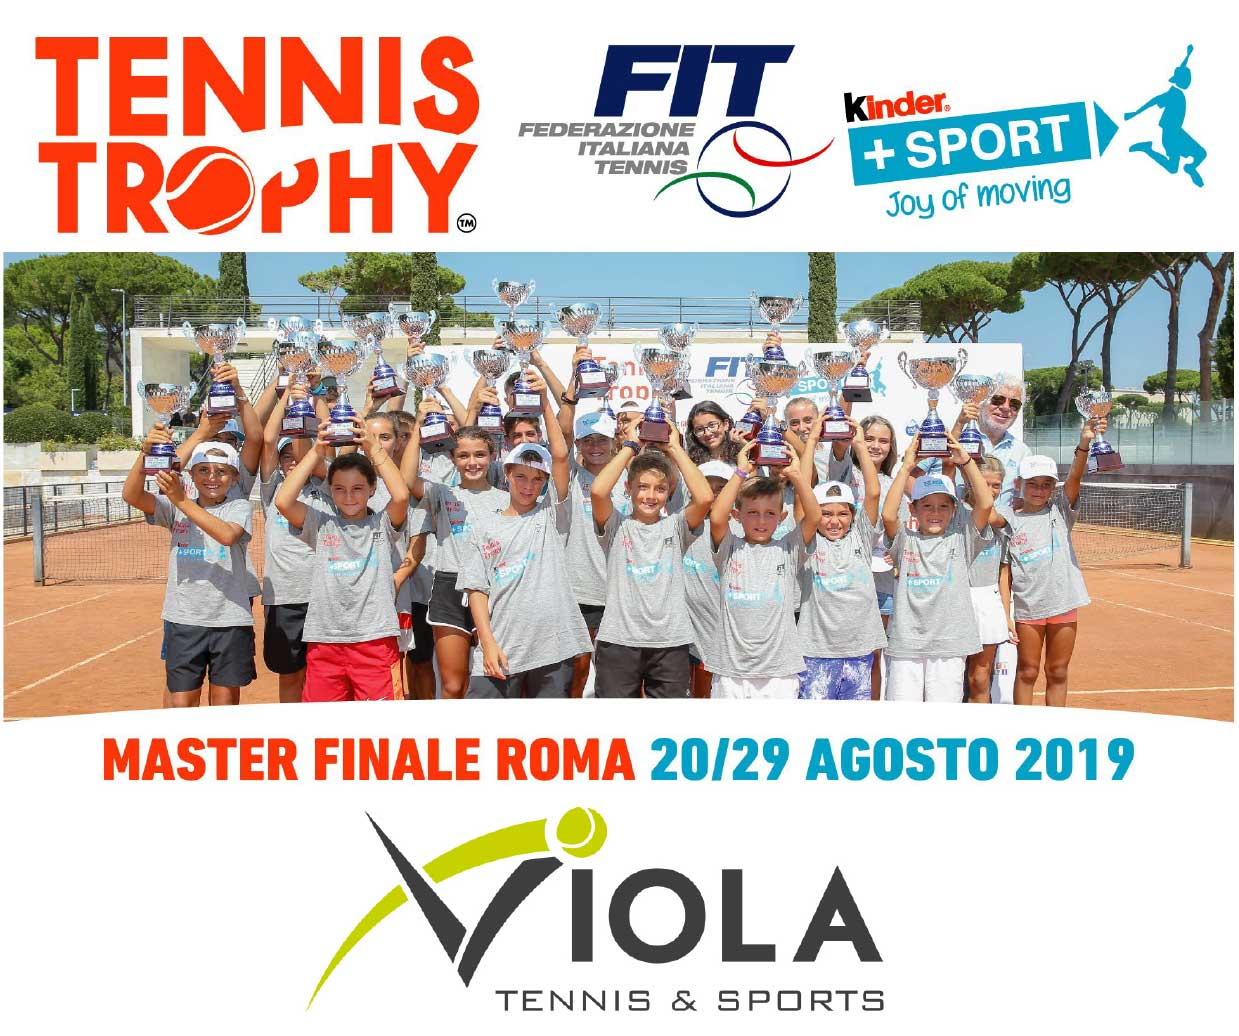 Tennis Trophy - Kinder 2019